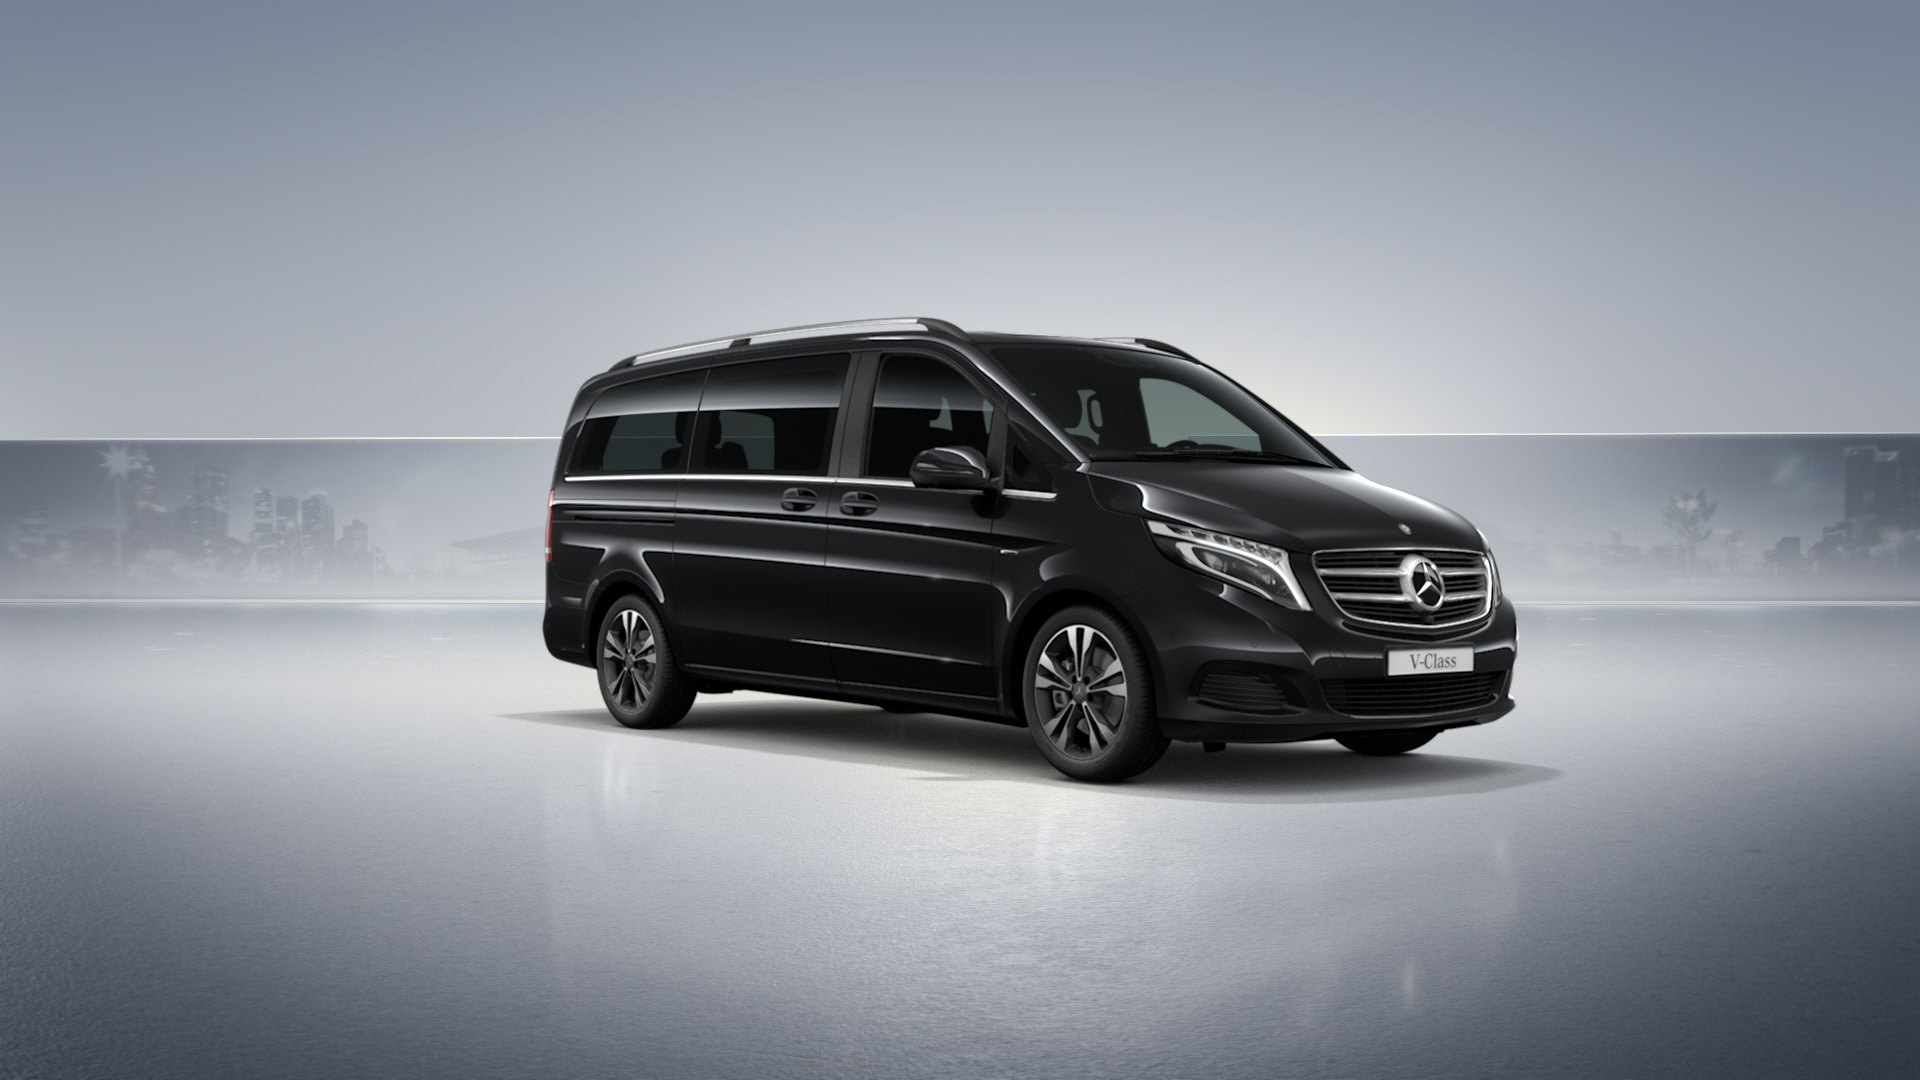 mercedes benz v class xl vip 4matic alphubel limousine service. Black Bedroom Furniture Sets. Home Design Ideas